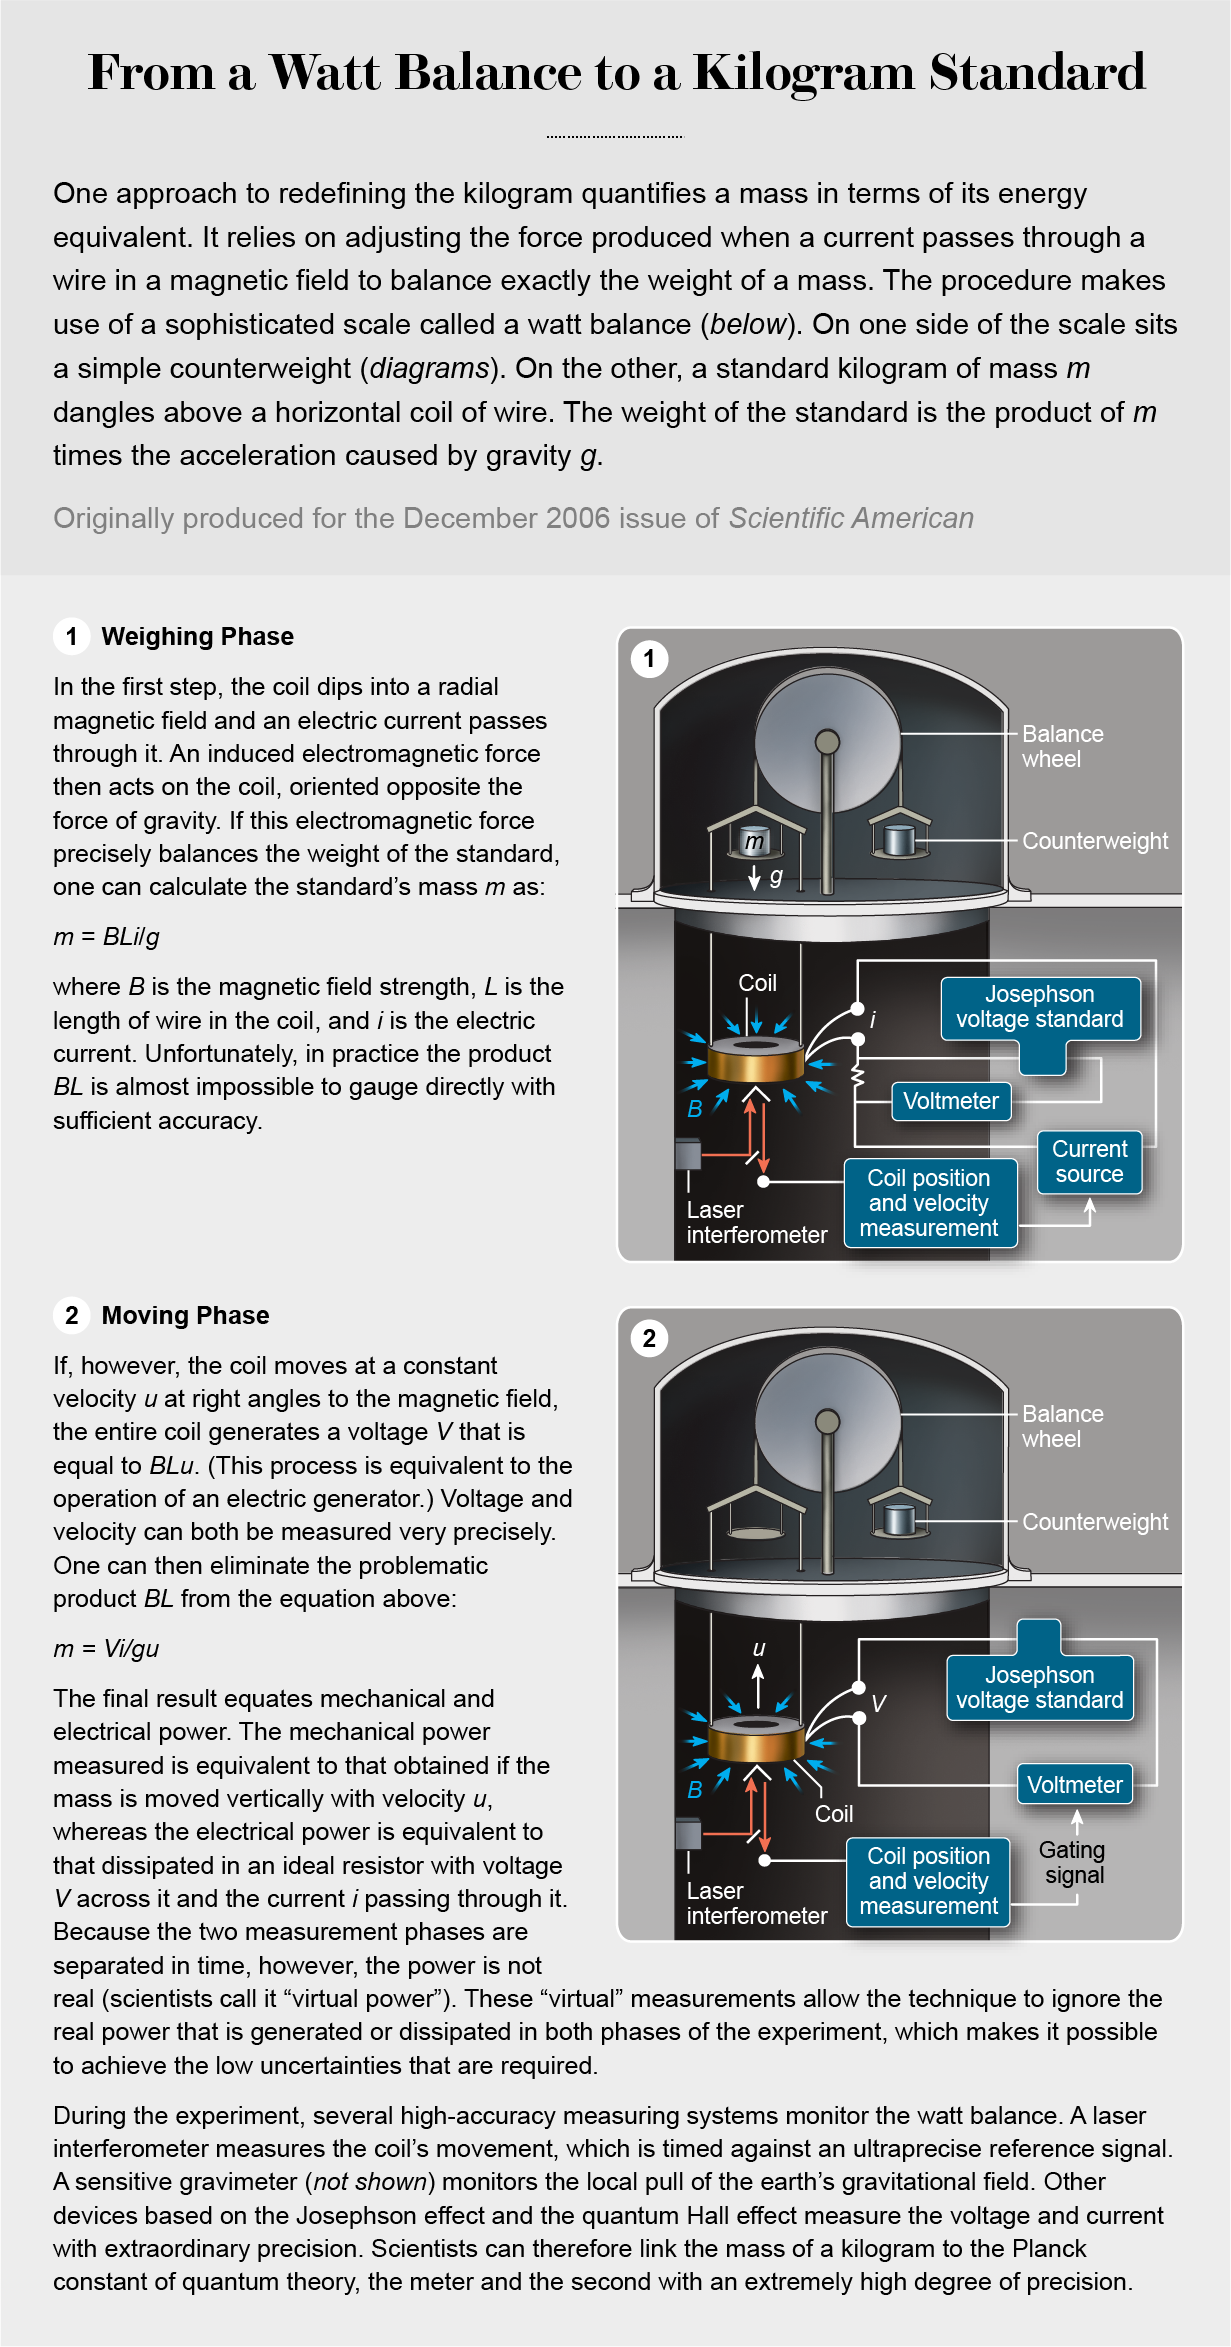 How and Why Scientists Redefined the Kilogram - Scientific